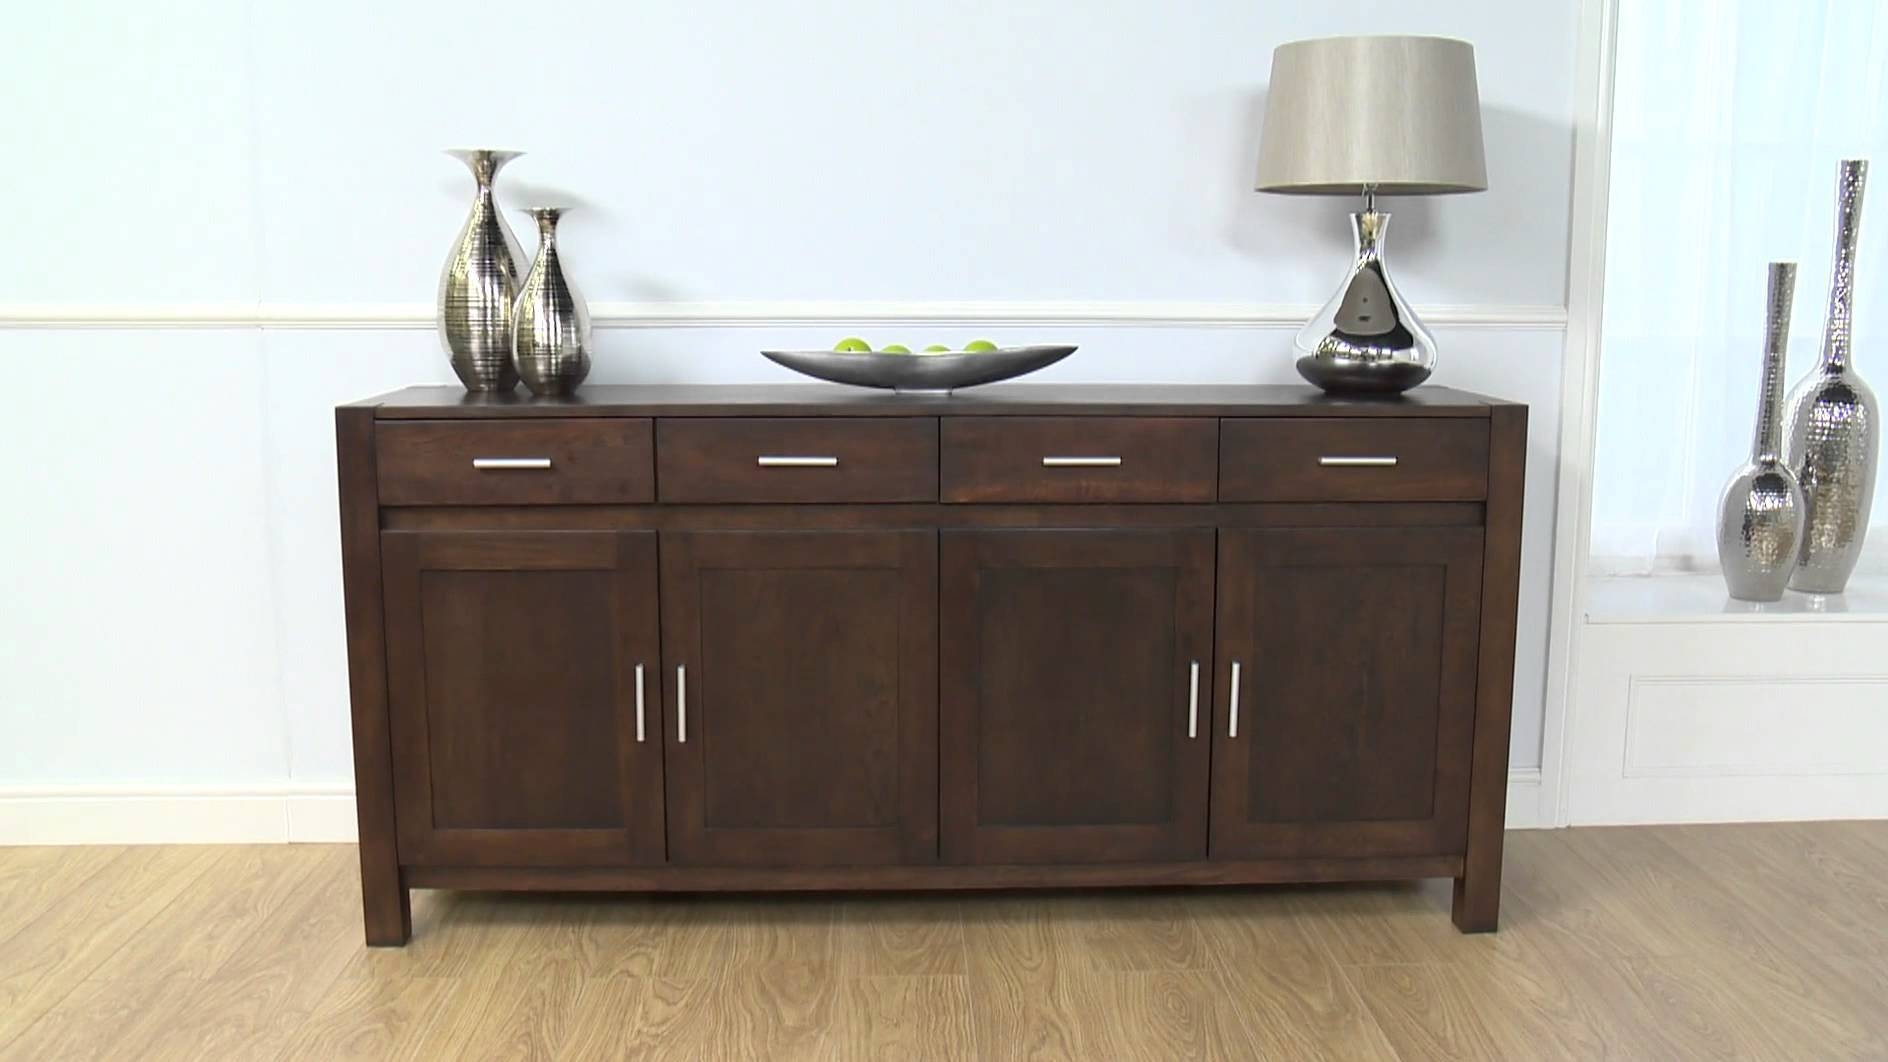 Dark Wood Sideboard: Verona Dark Oak Sideboard Xl - Youtube pertaining to Dark Wood Sideboards (Image 4 of 15)